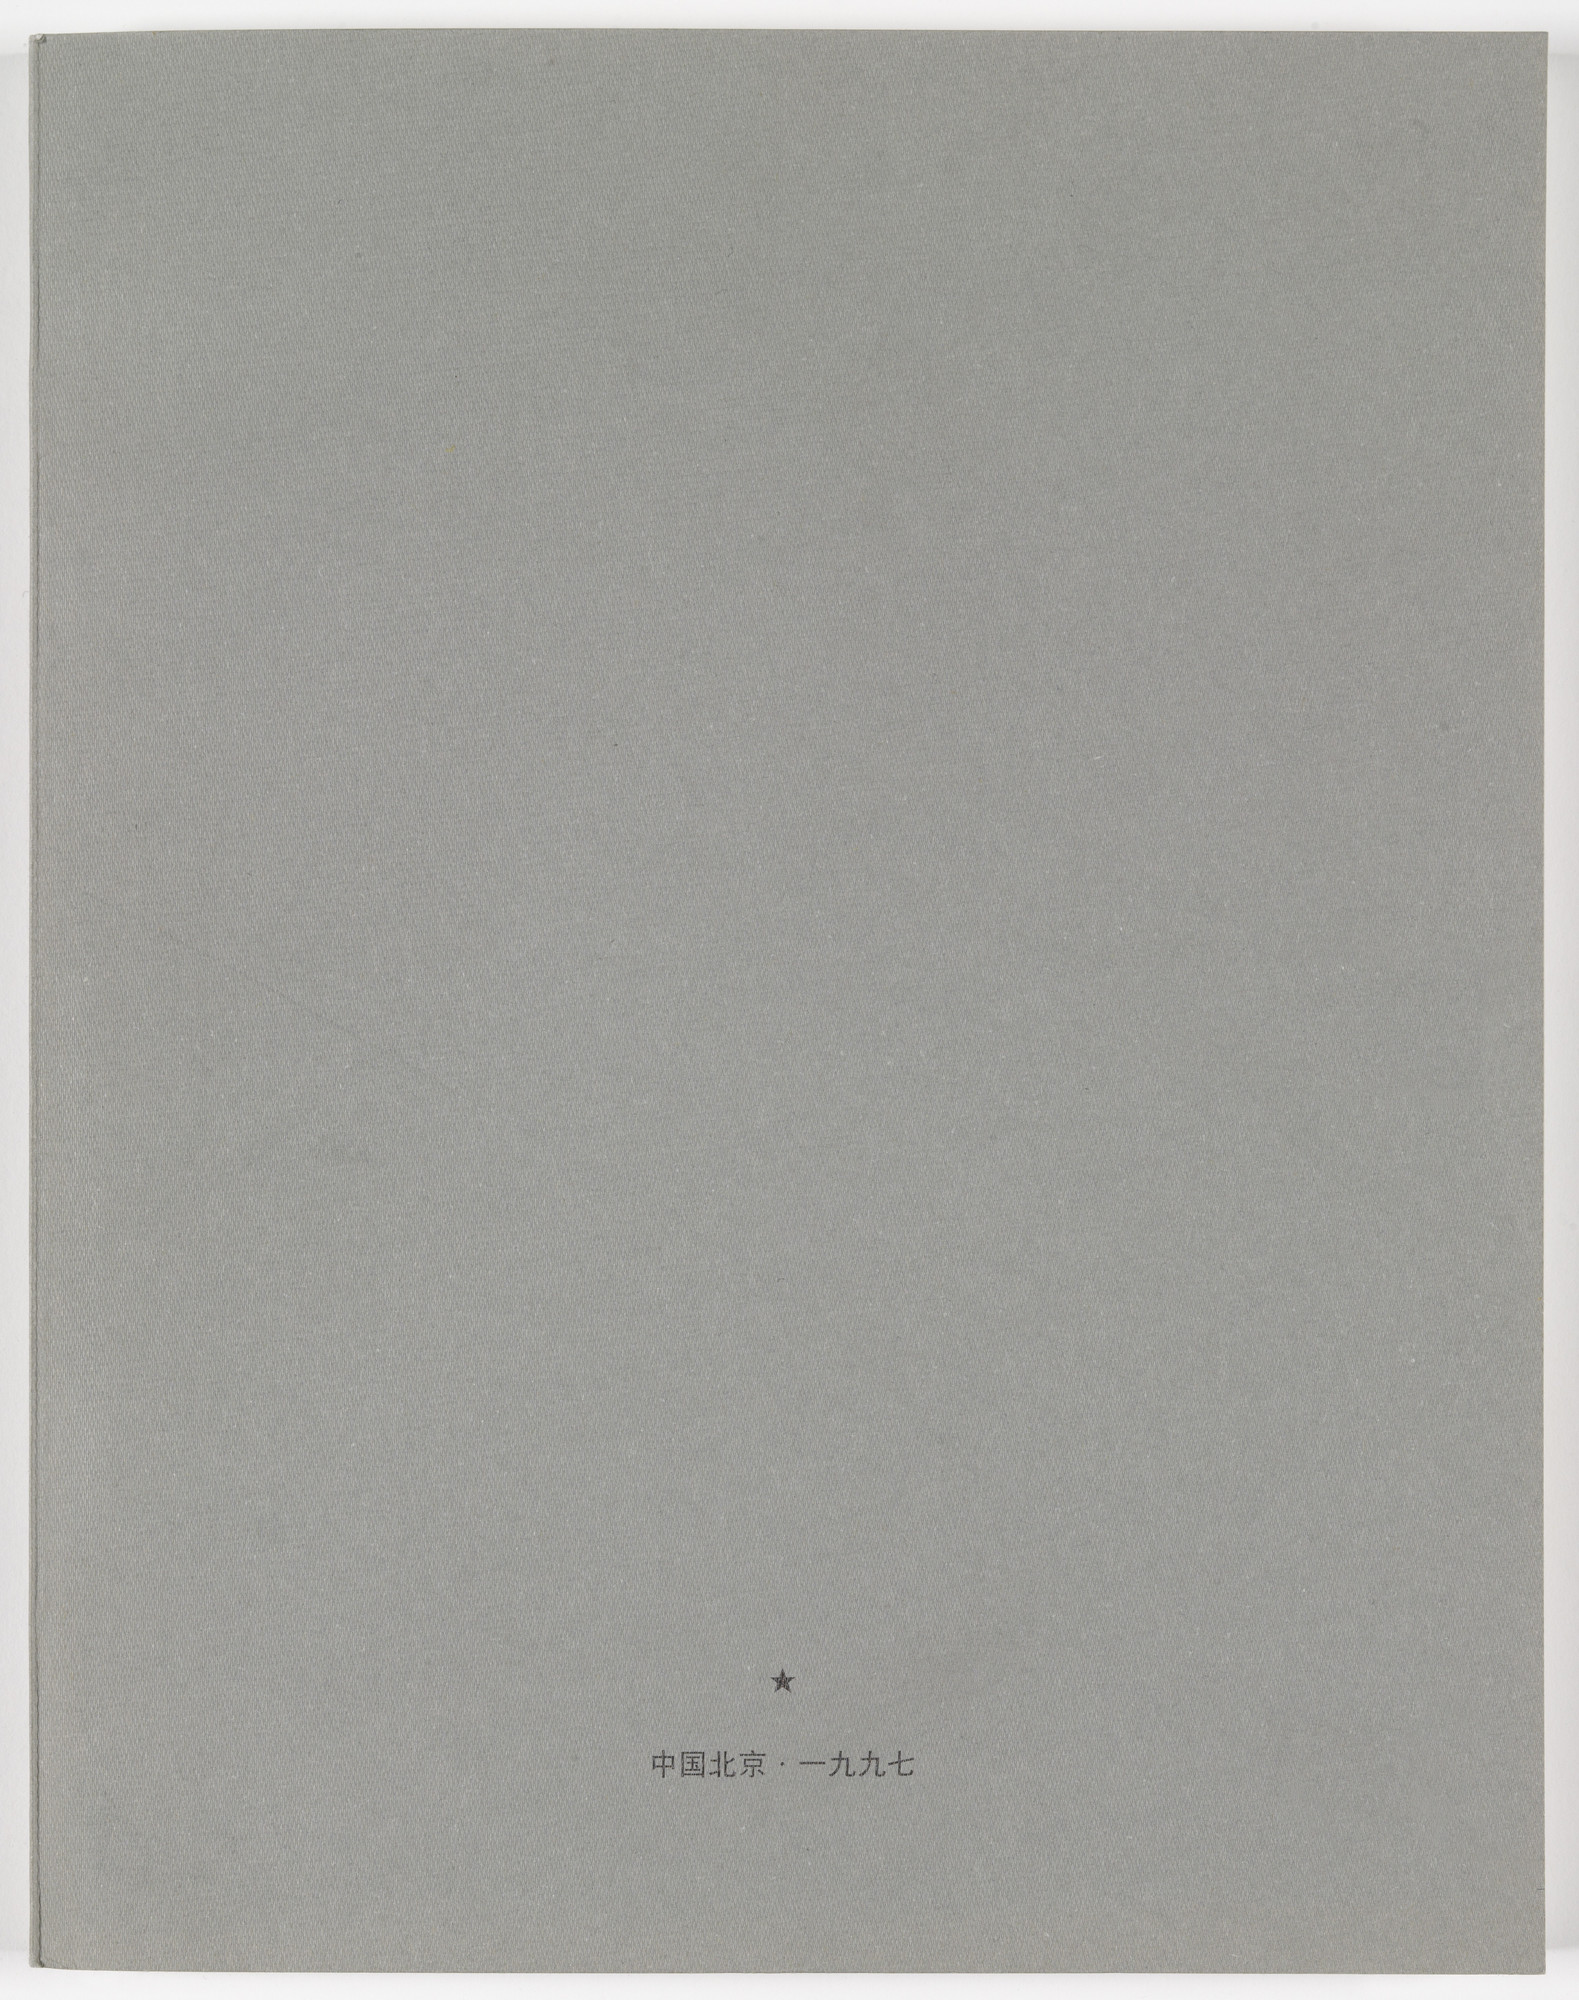 Ai Weiwei. The Grey Cover Book. 1997